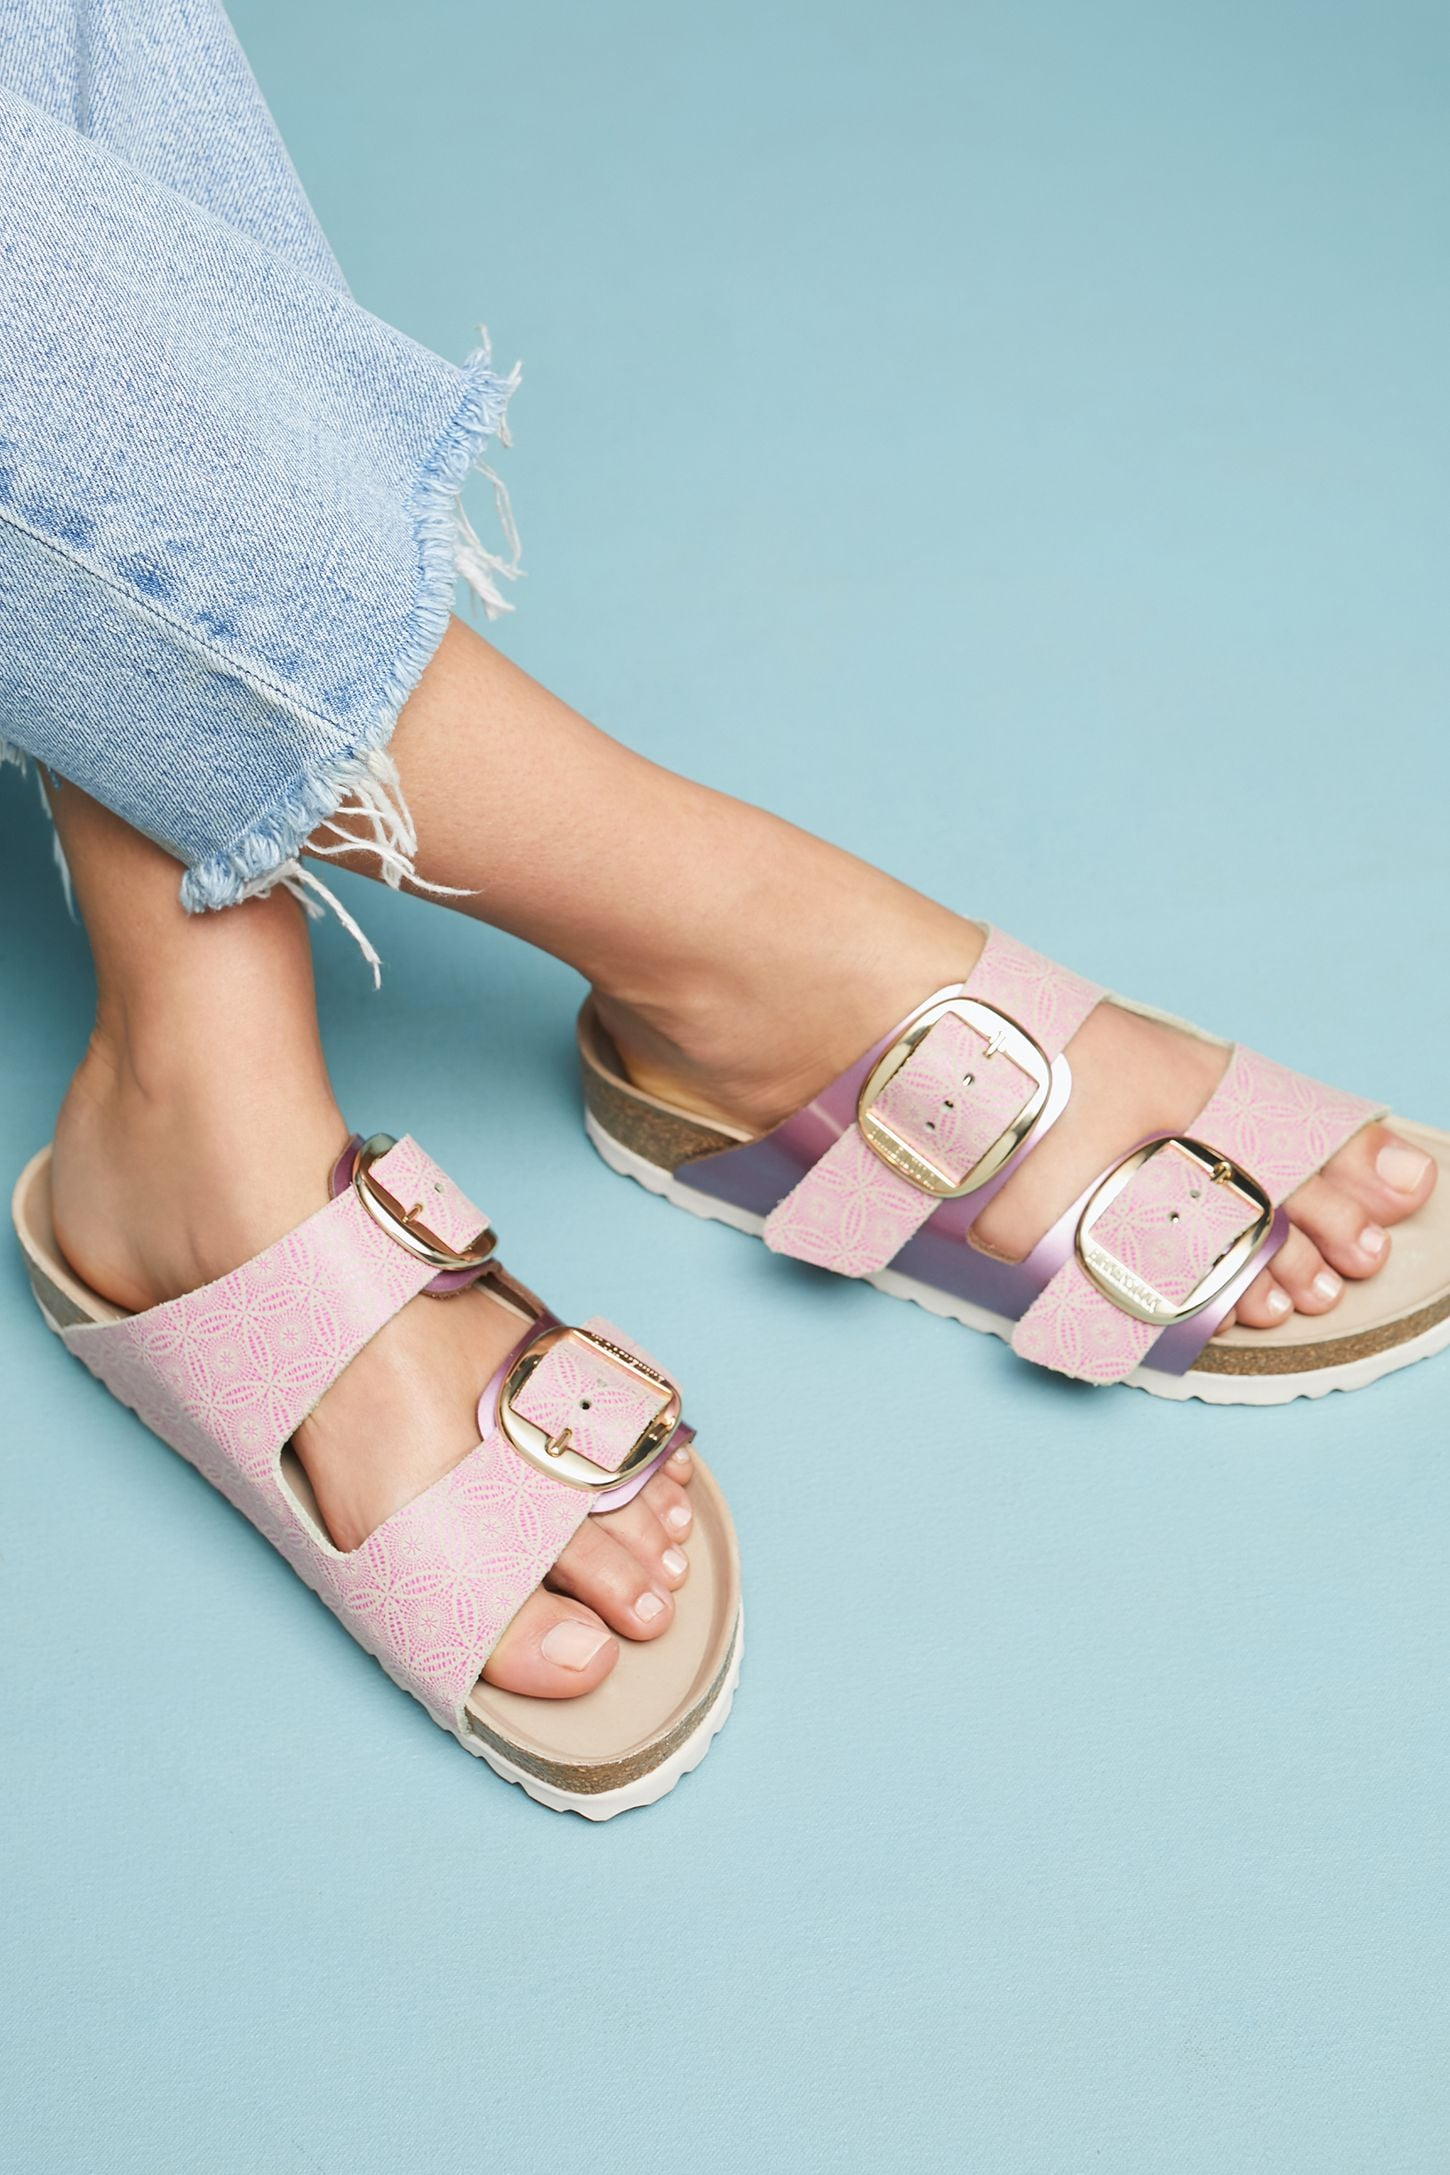 Birkenstock Arizona Sandals | Never End Up With Blisters on